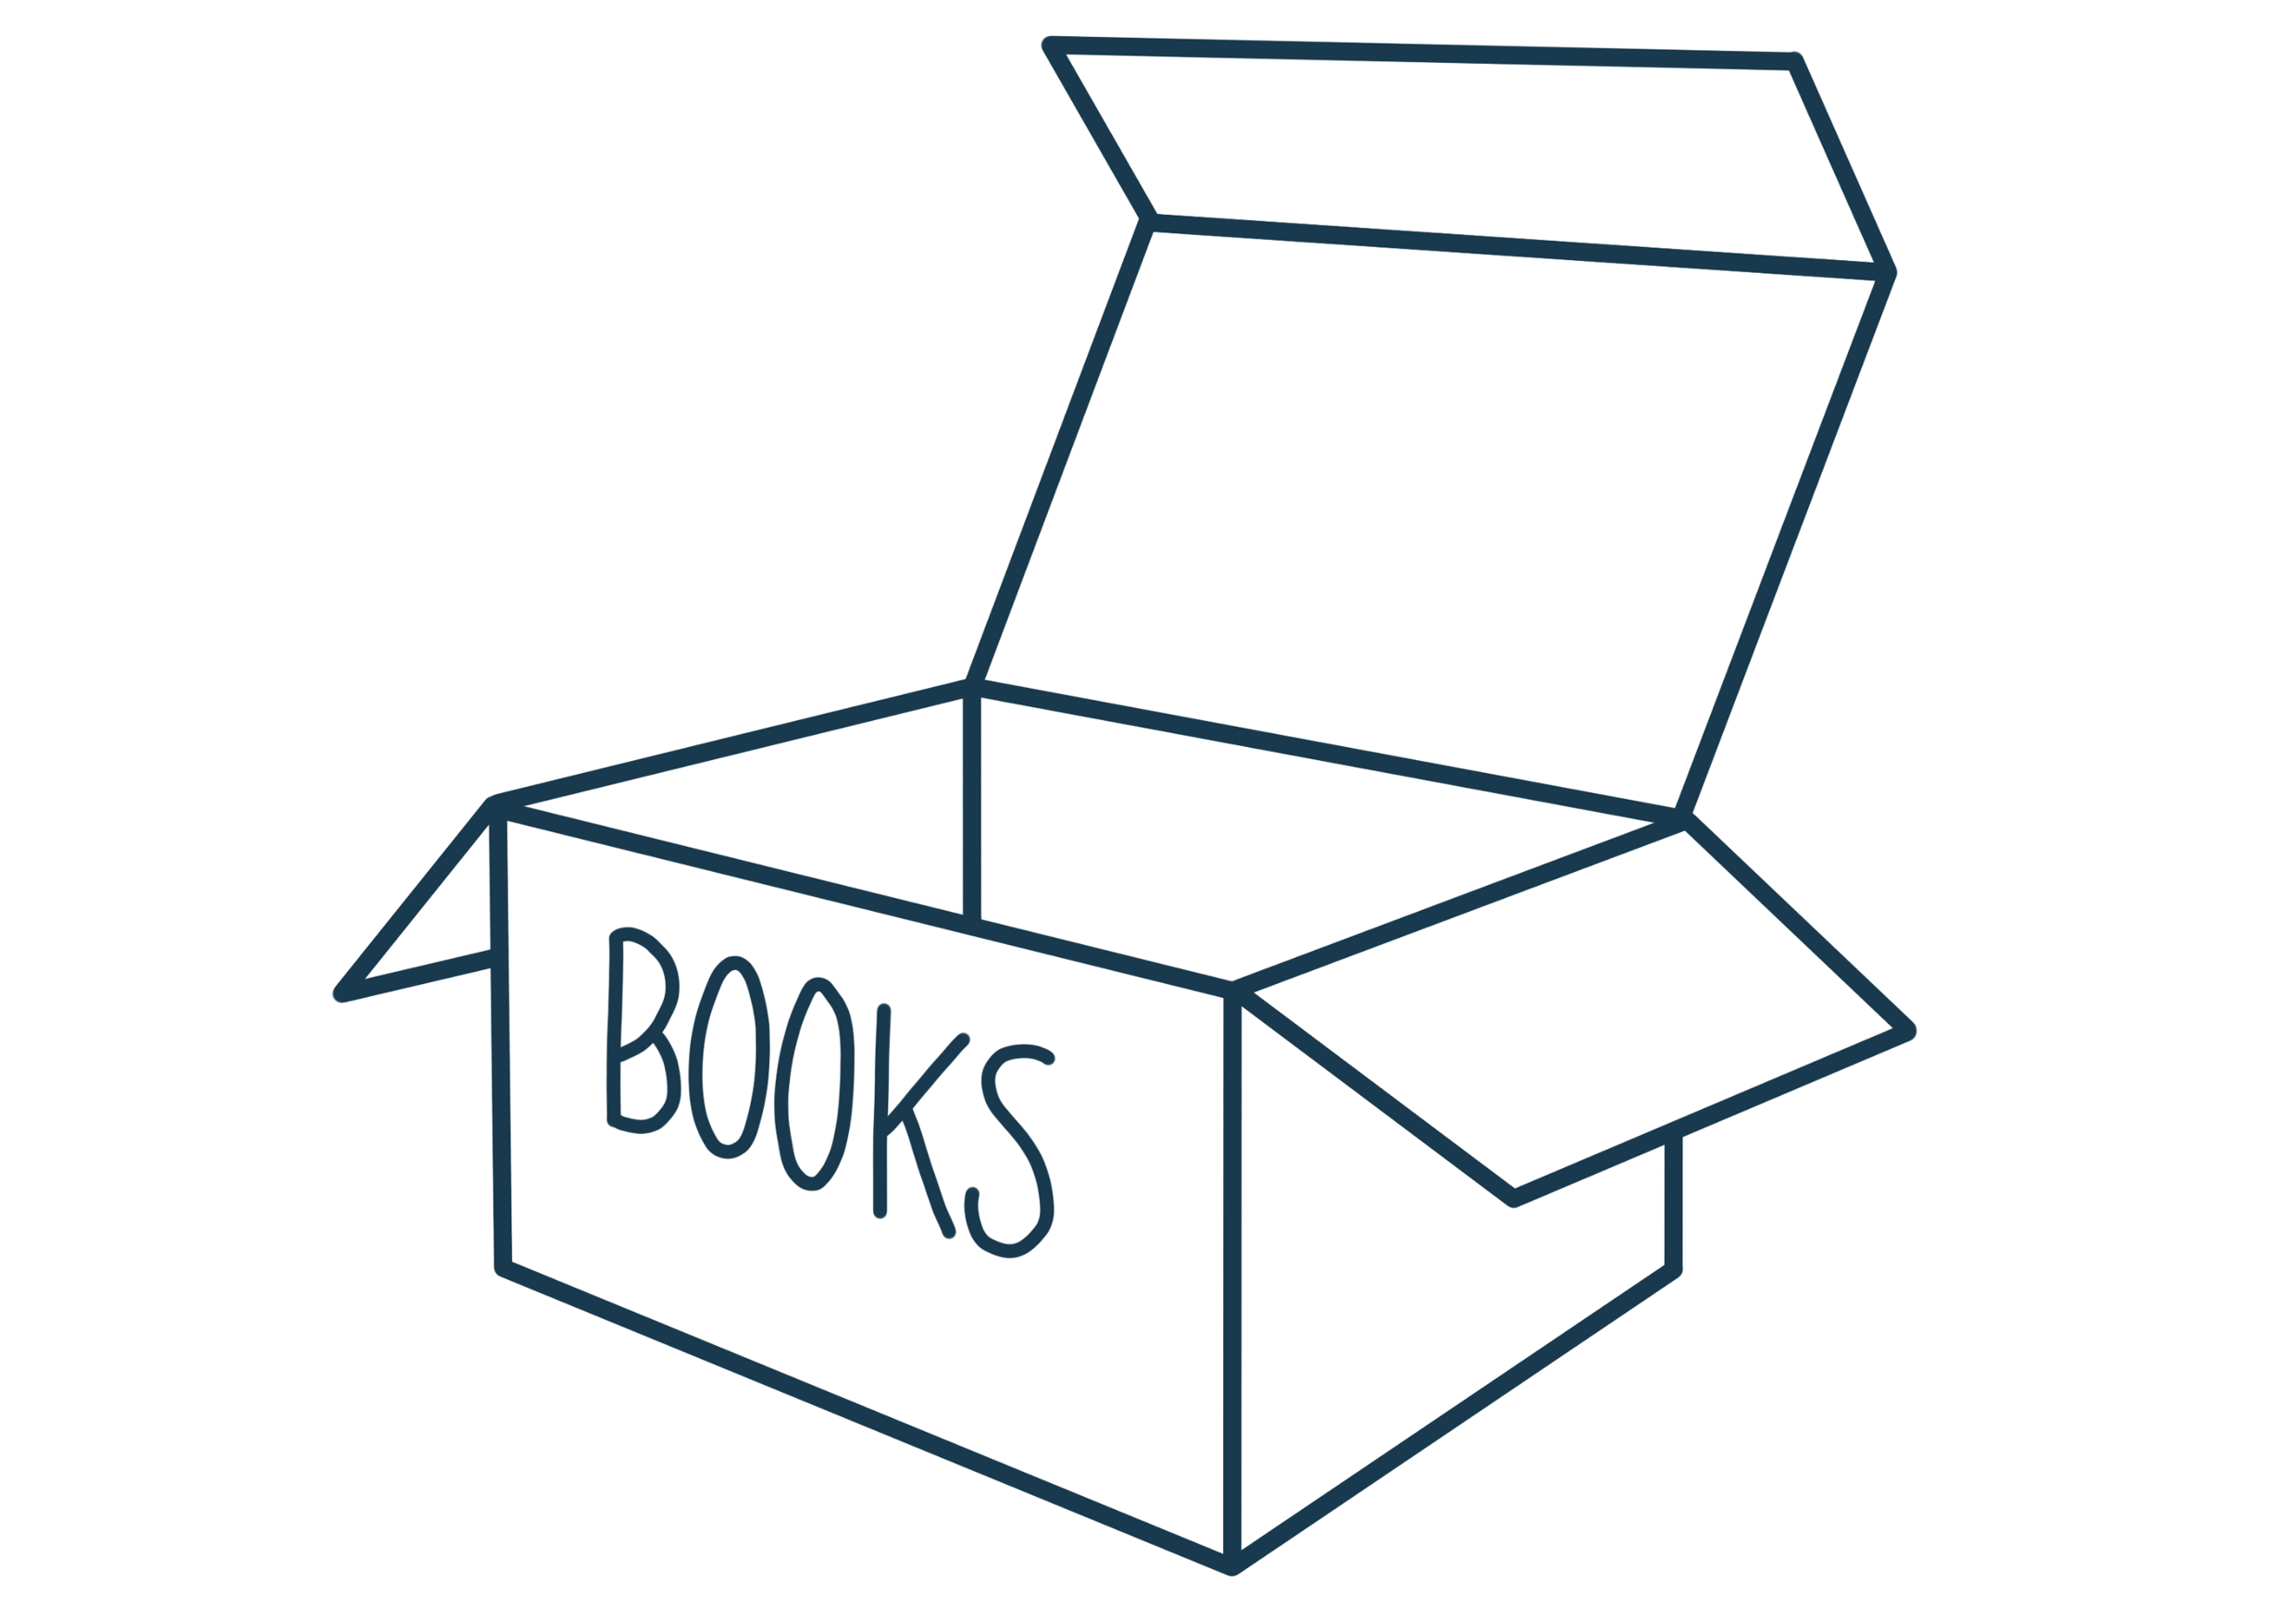 Book_Subscription_Boxes smaller.png